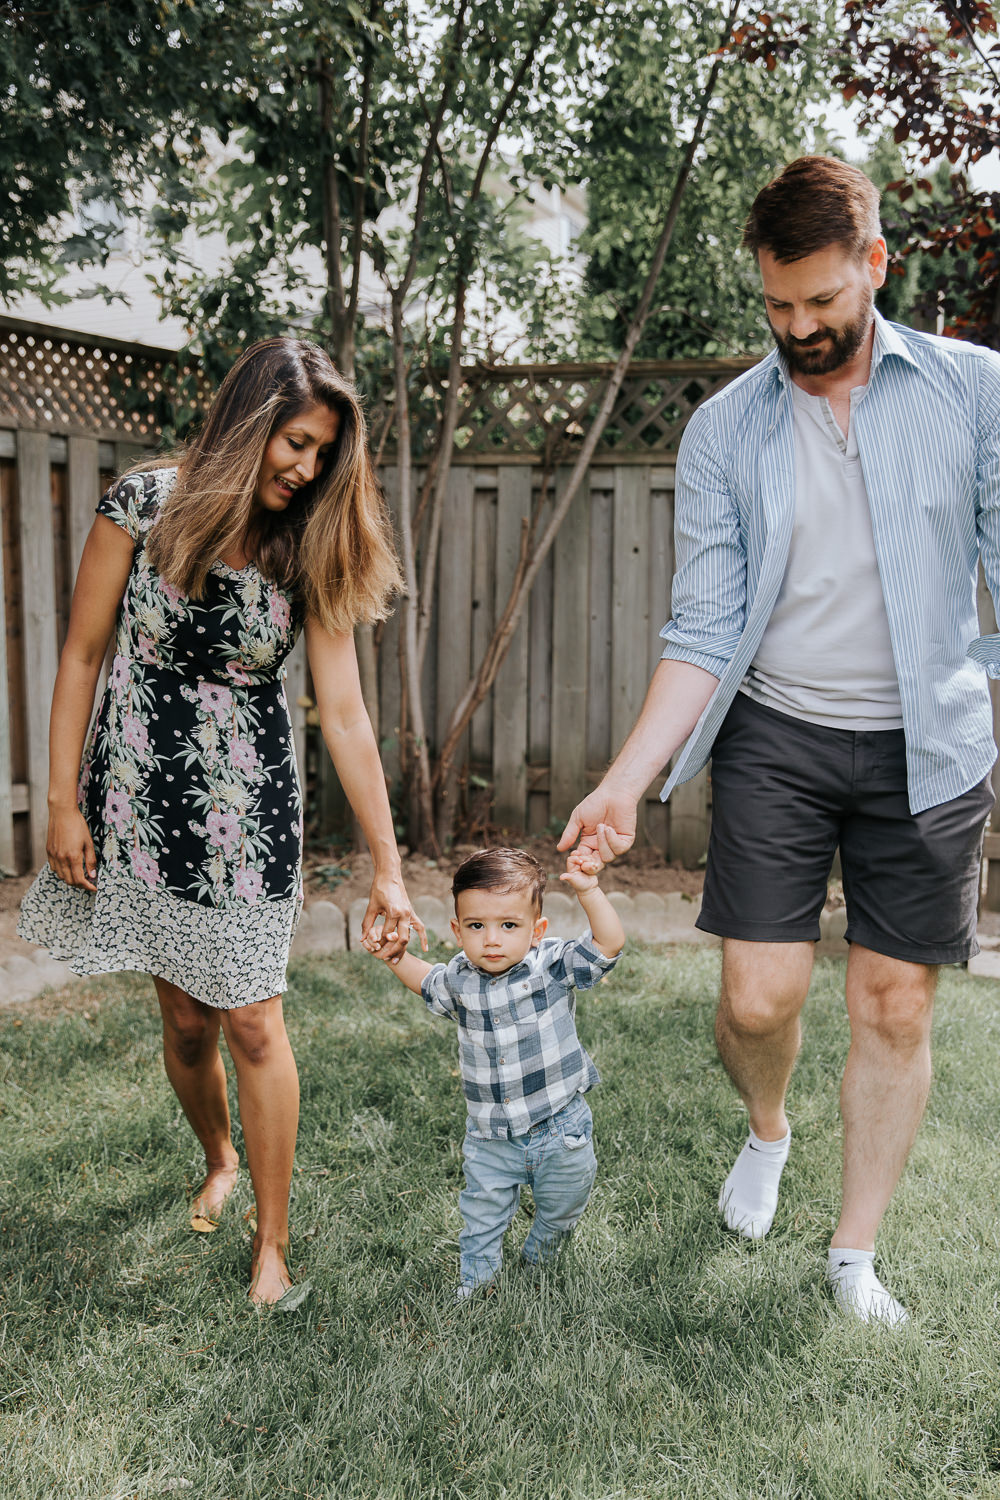 1 year old baby boy with dark hair in white and blue plaid shirt and jeans holding mom and dad's hands as parents help him walk between them in backyard - GTA Lifestyle Photos